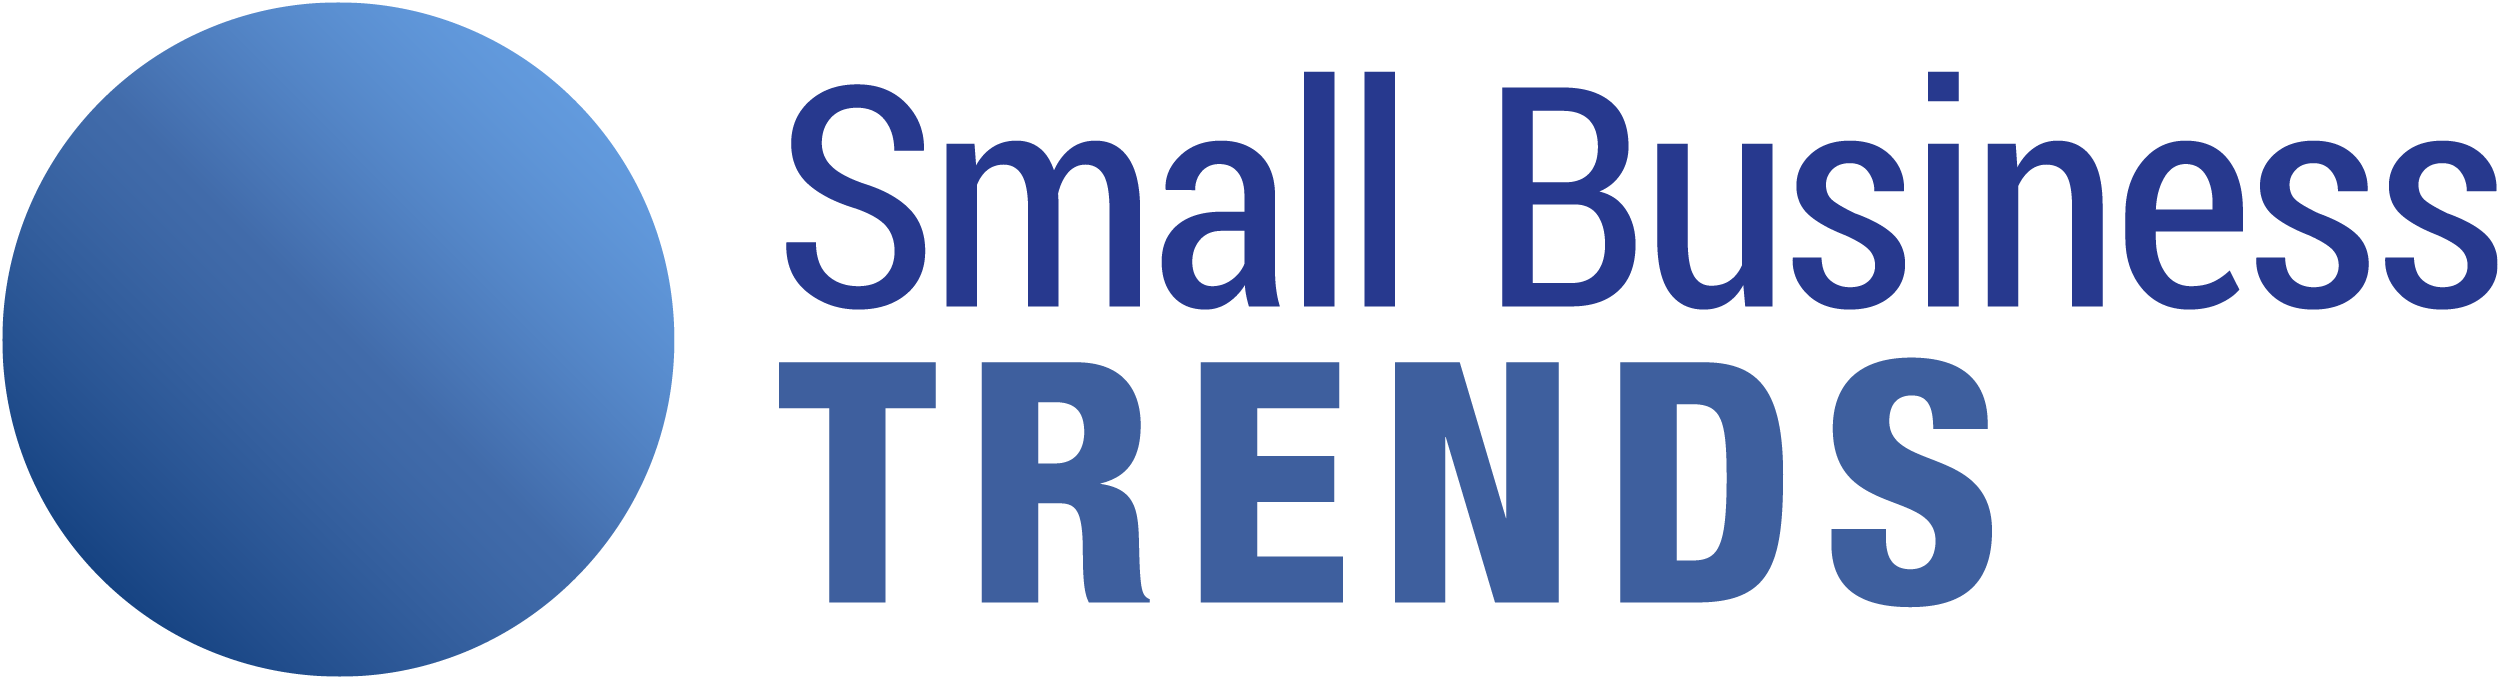 Small business trends logo 2500w